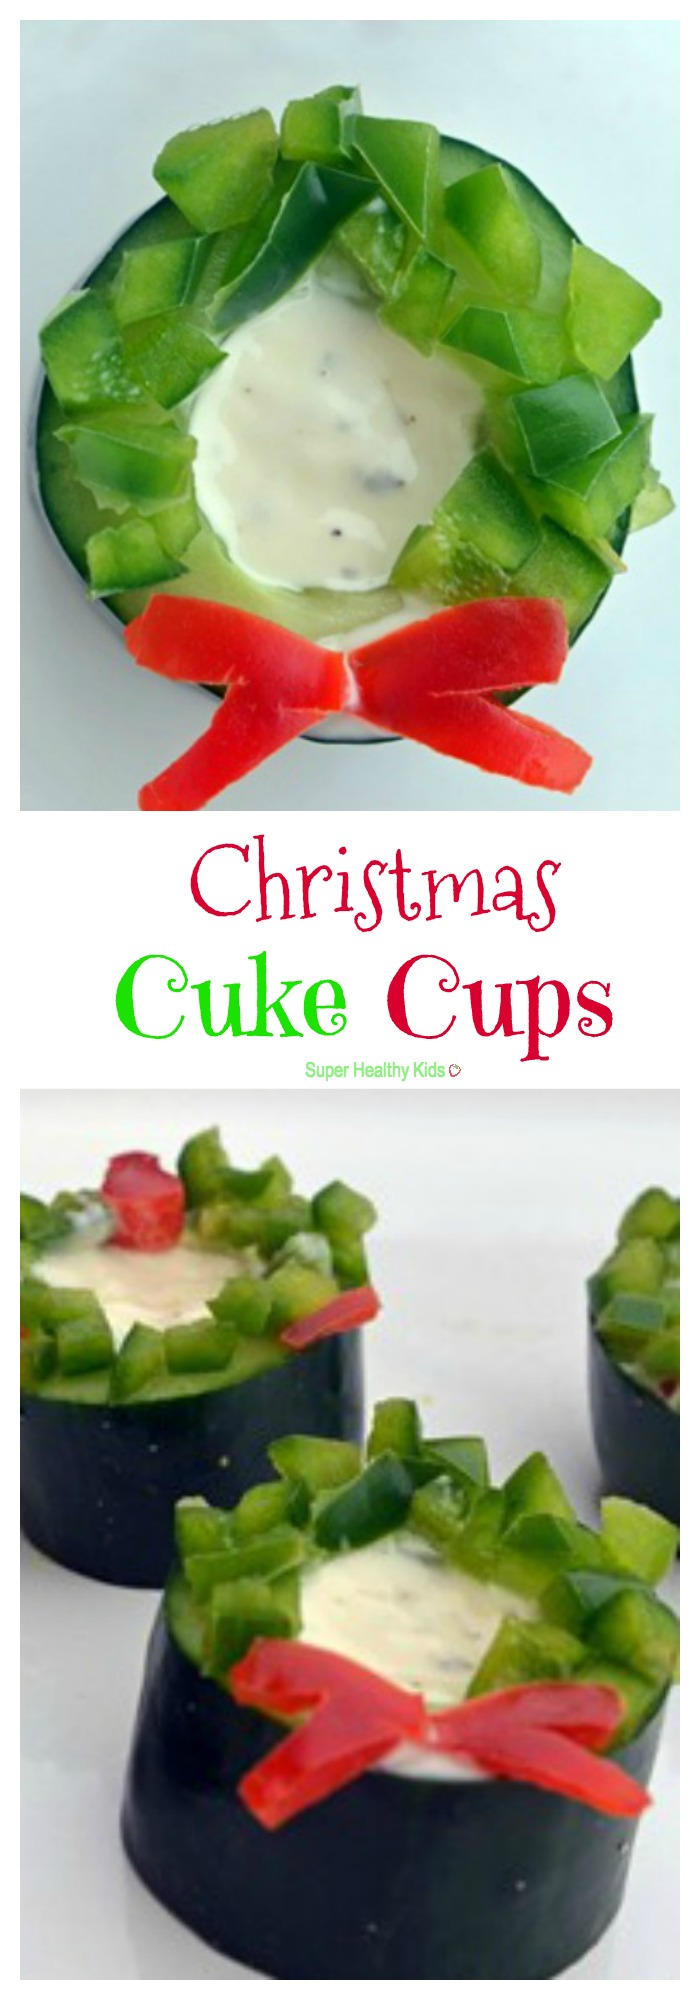 Christmas Cuke Cups. Veggies have never been so festive! http://www.superhealthykids.com/christmas-cuke-cups/